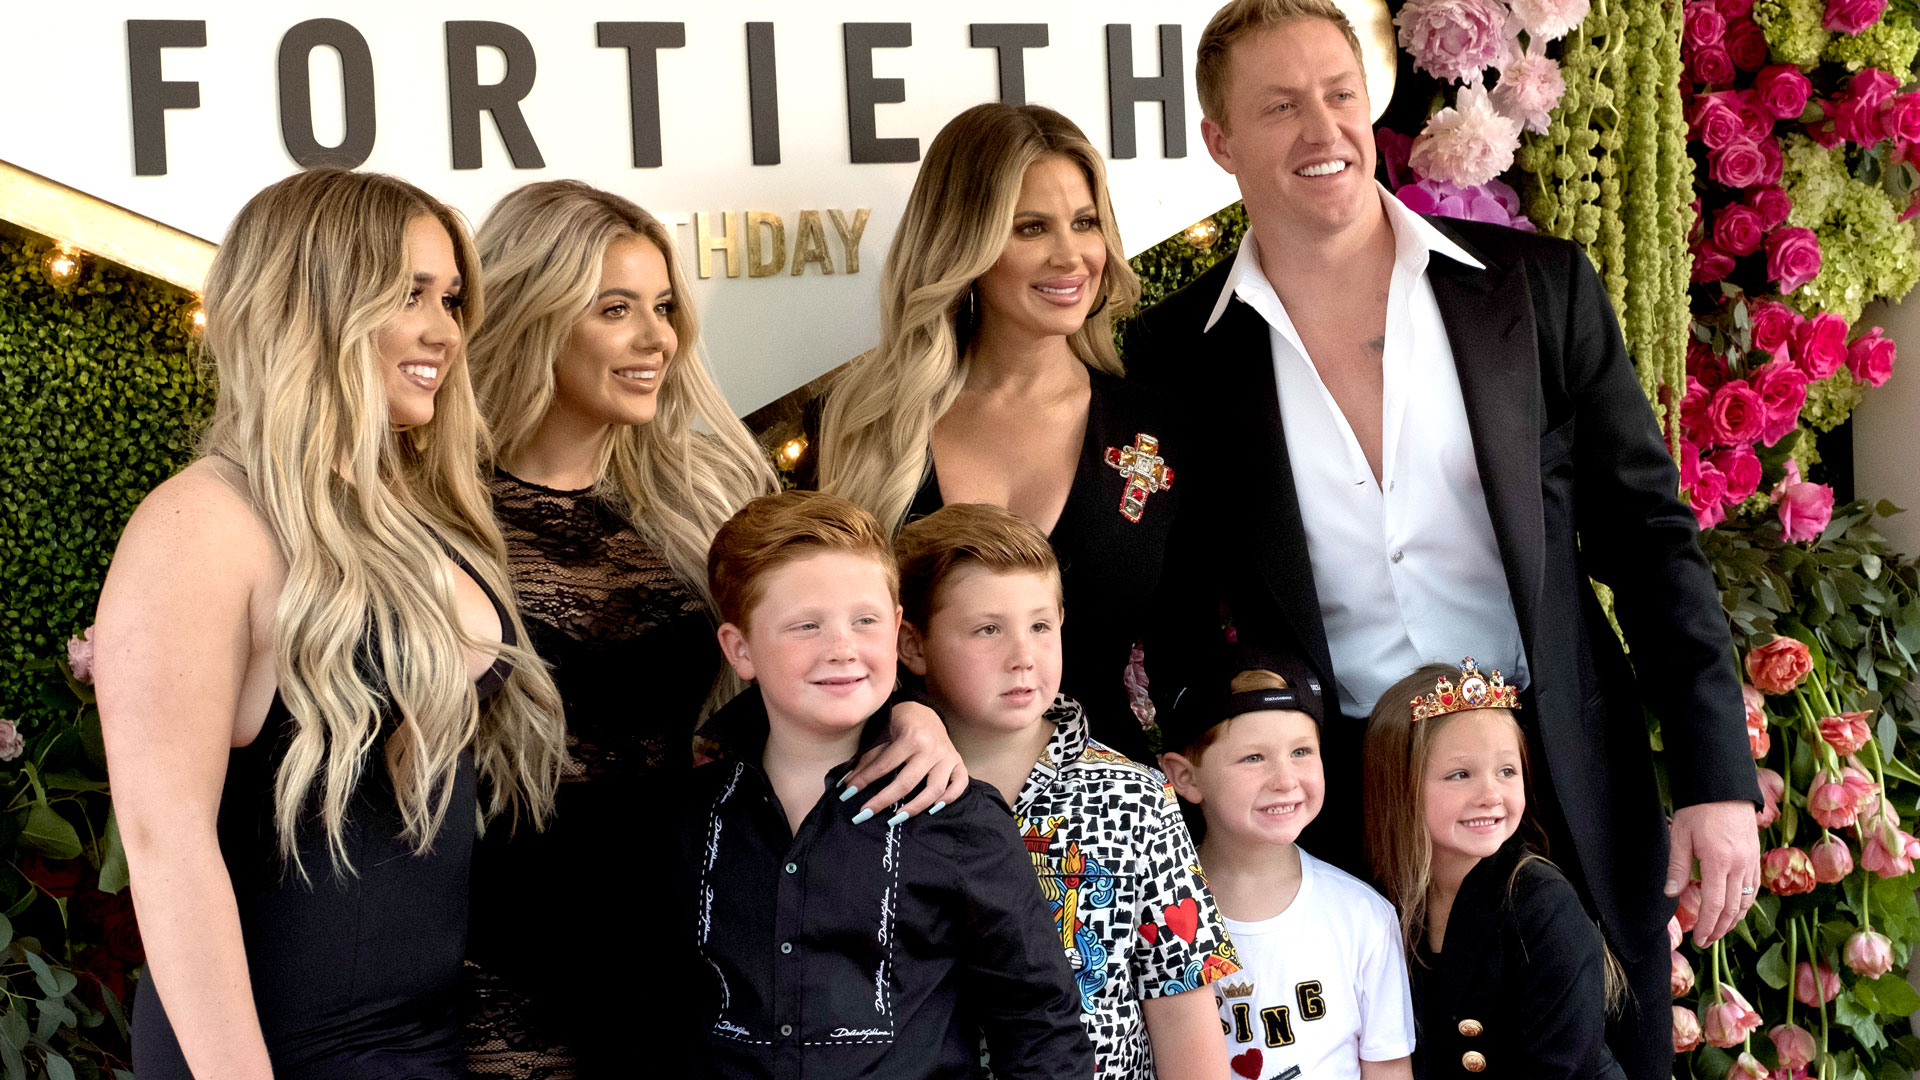 Kim Zolciak Biermann and Her Family